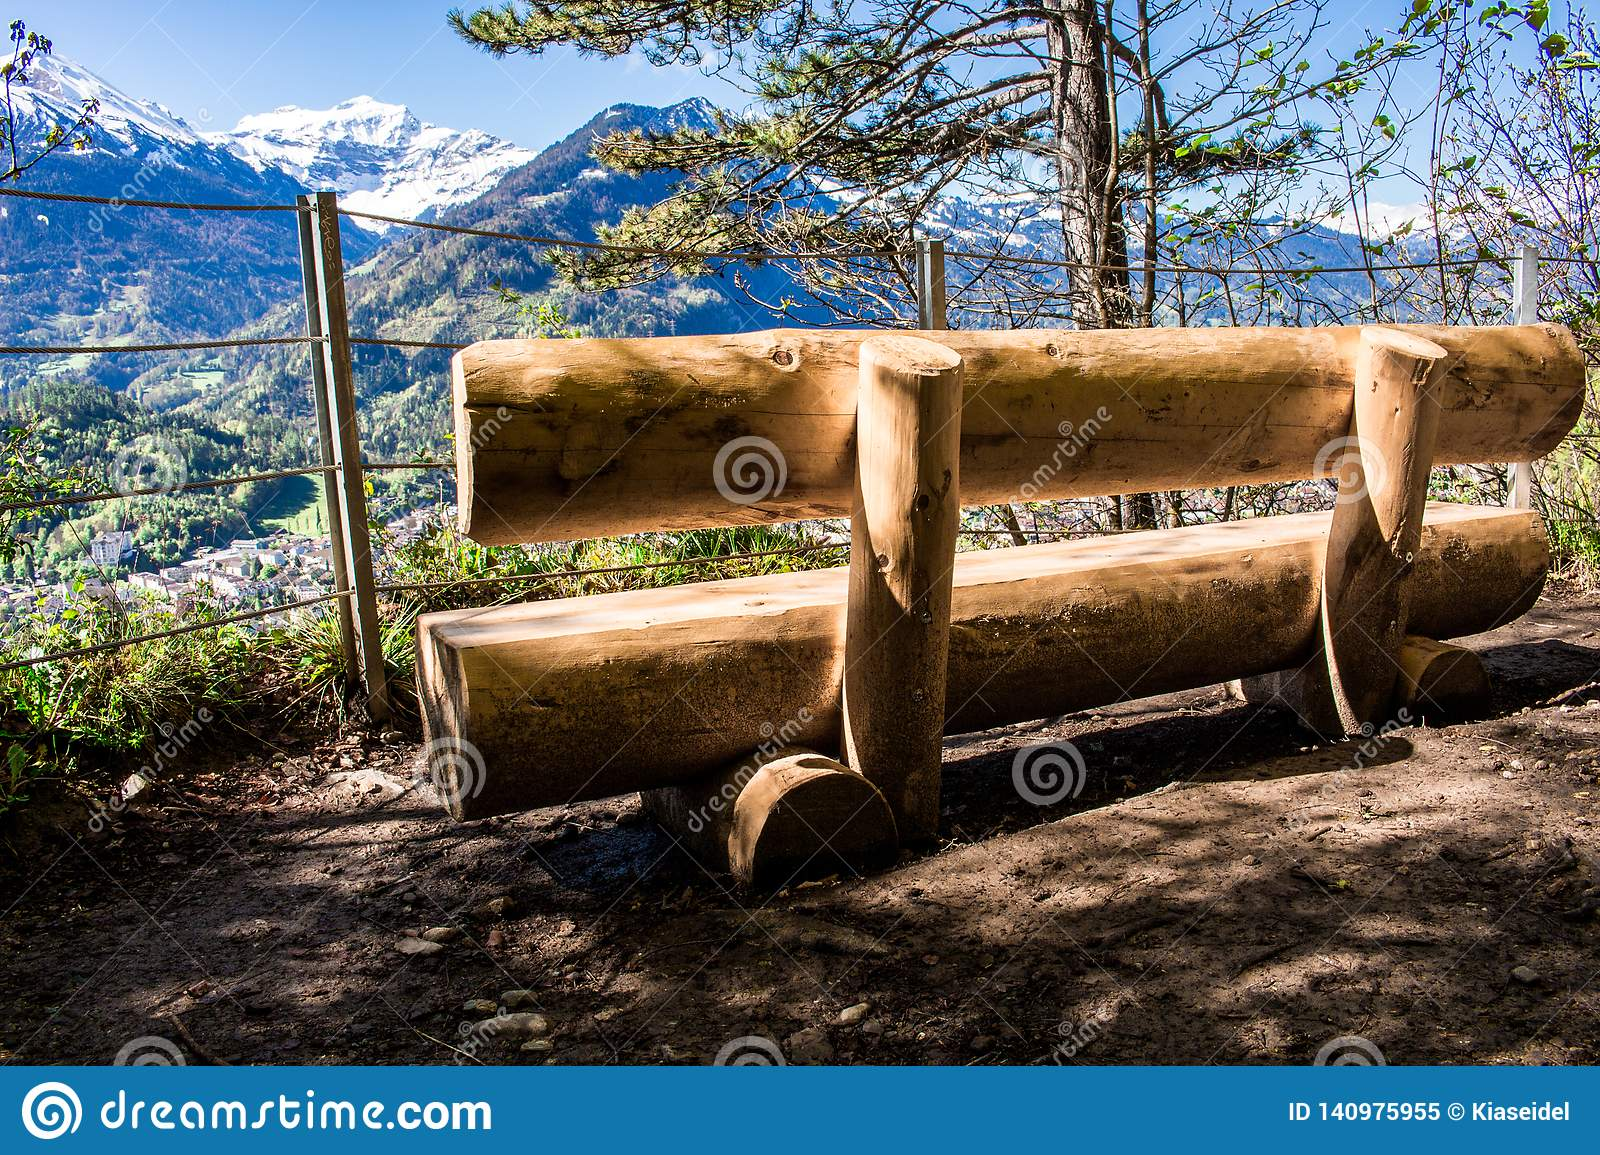 A place to chill during the hike to the top of Harder Kulm in Interlaken, Switzerland